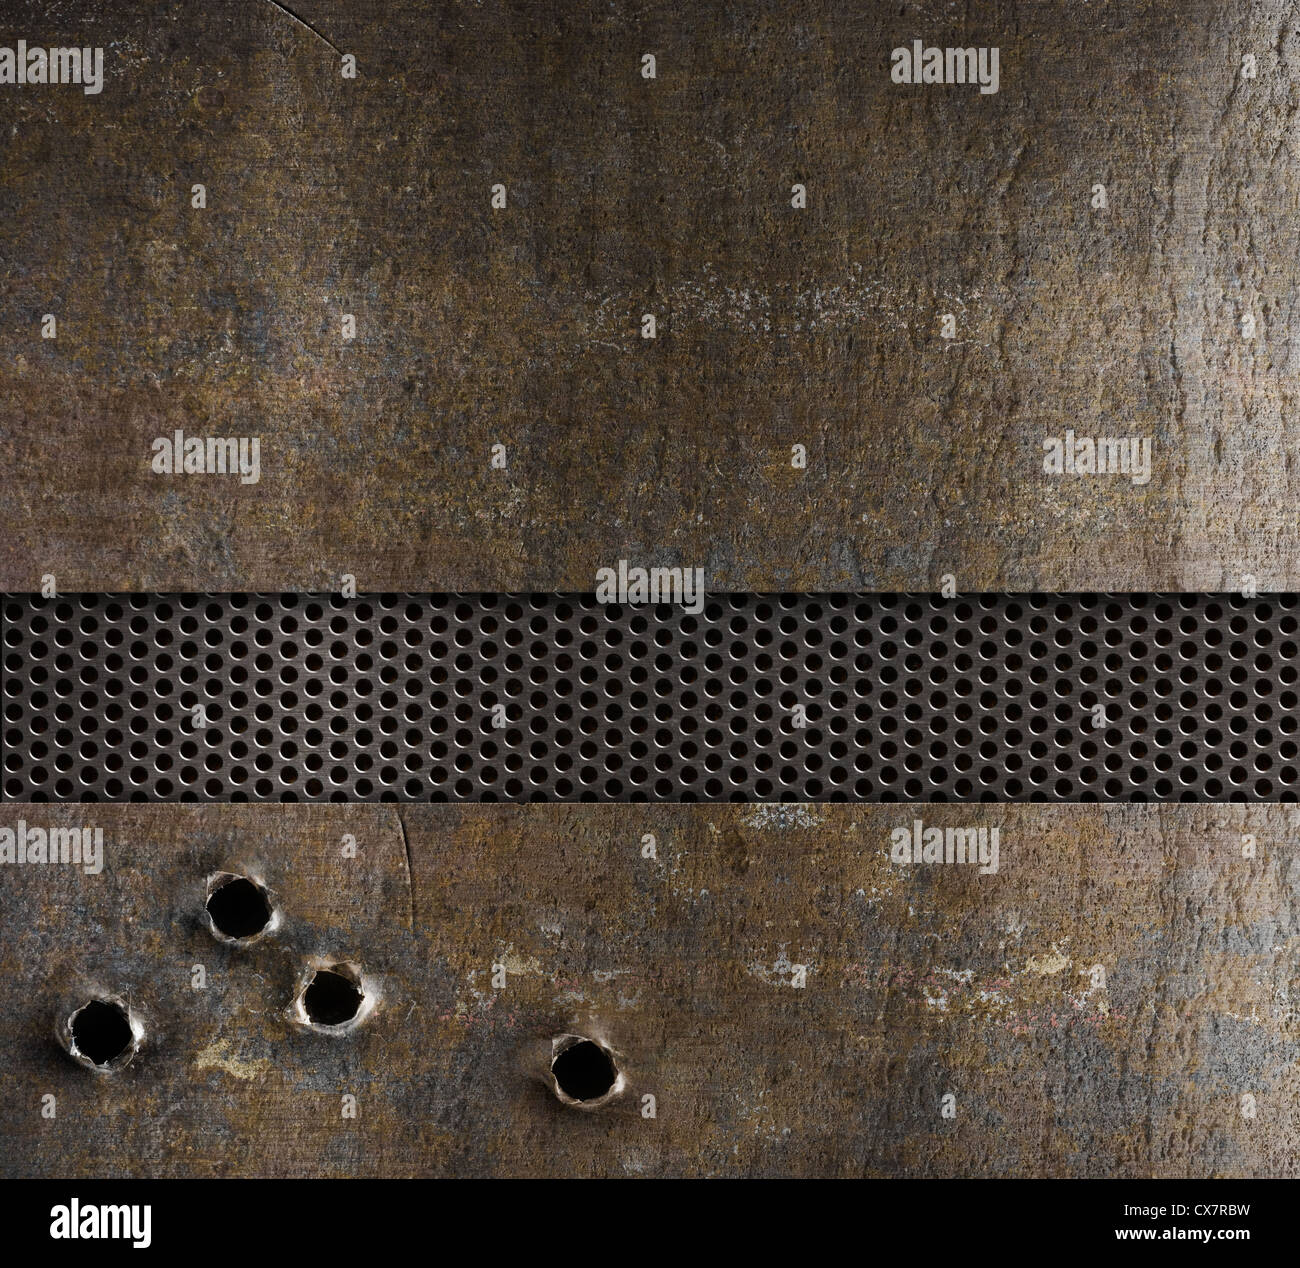 bullet holes in metal background - Stock Image